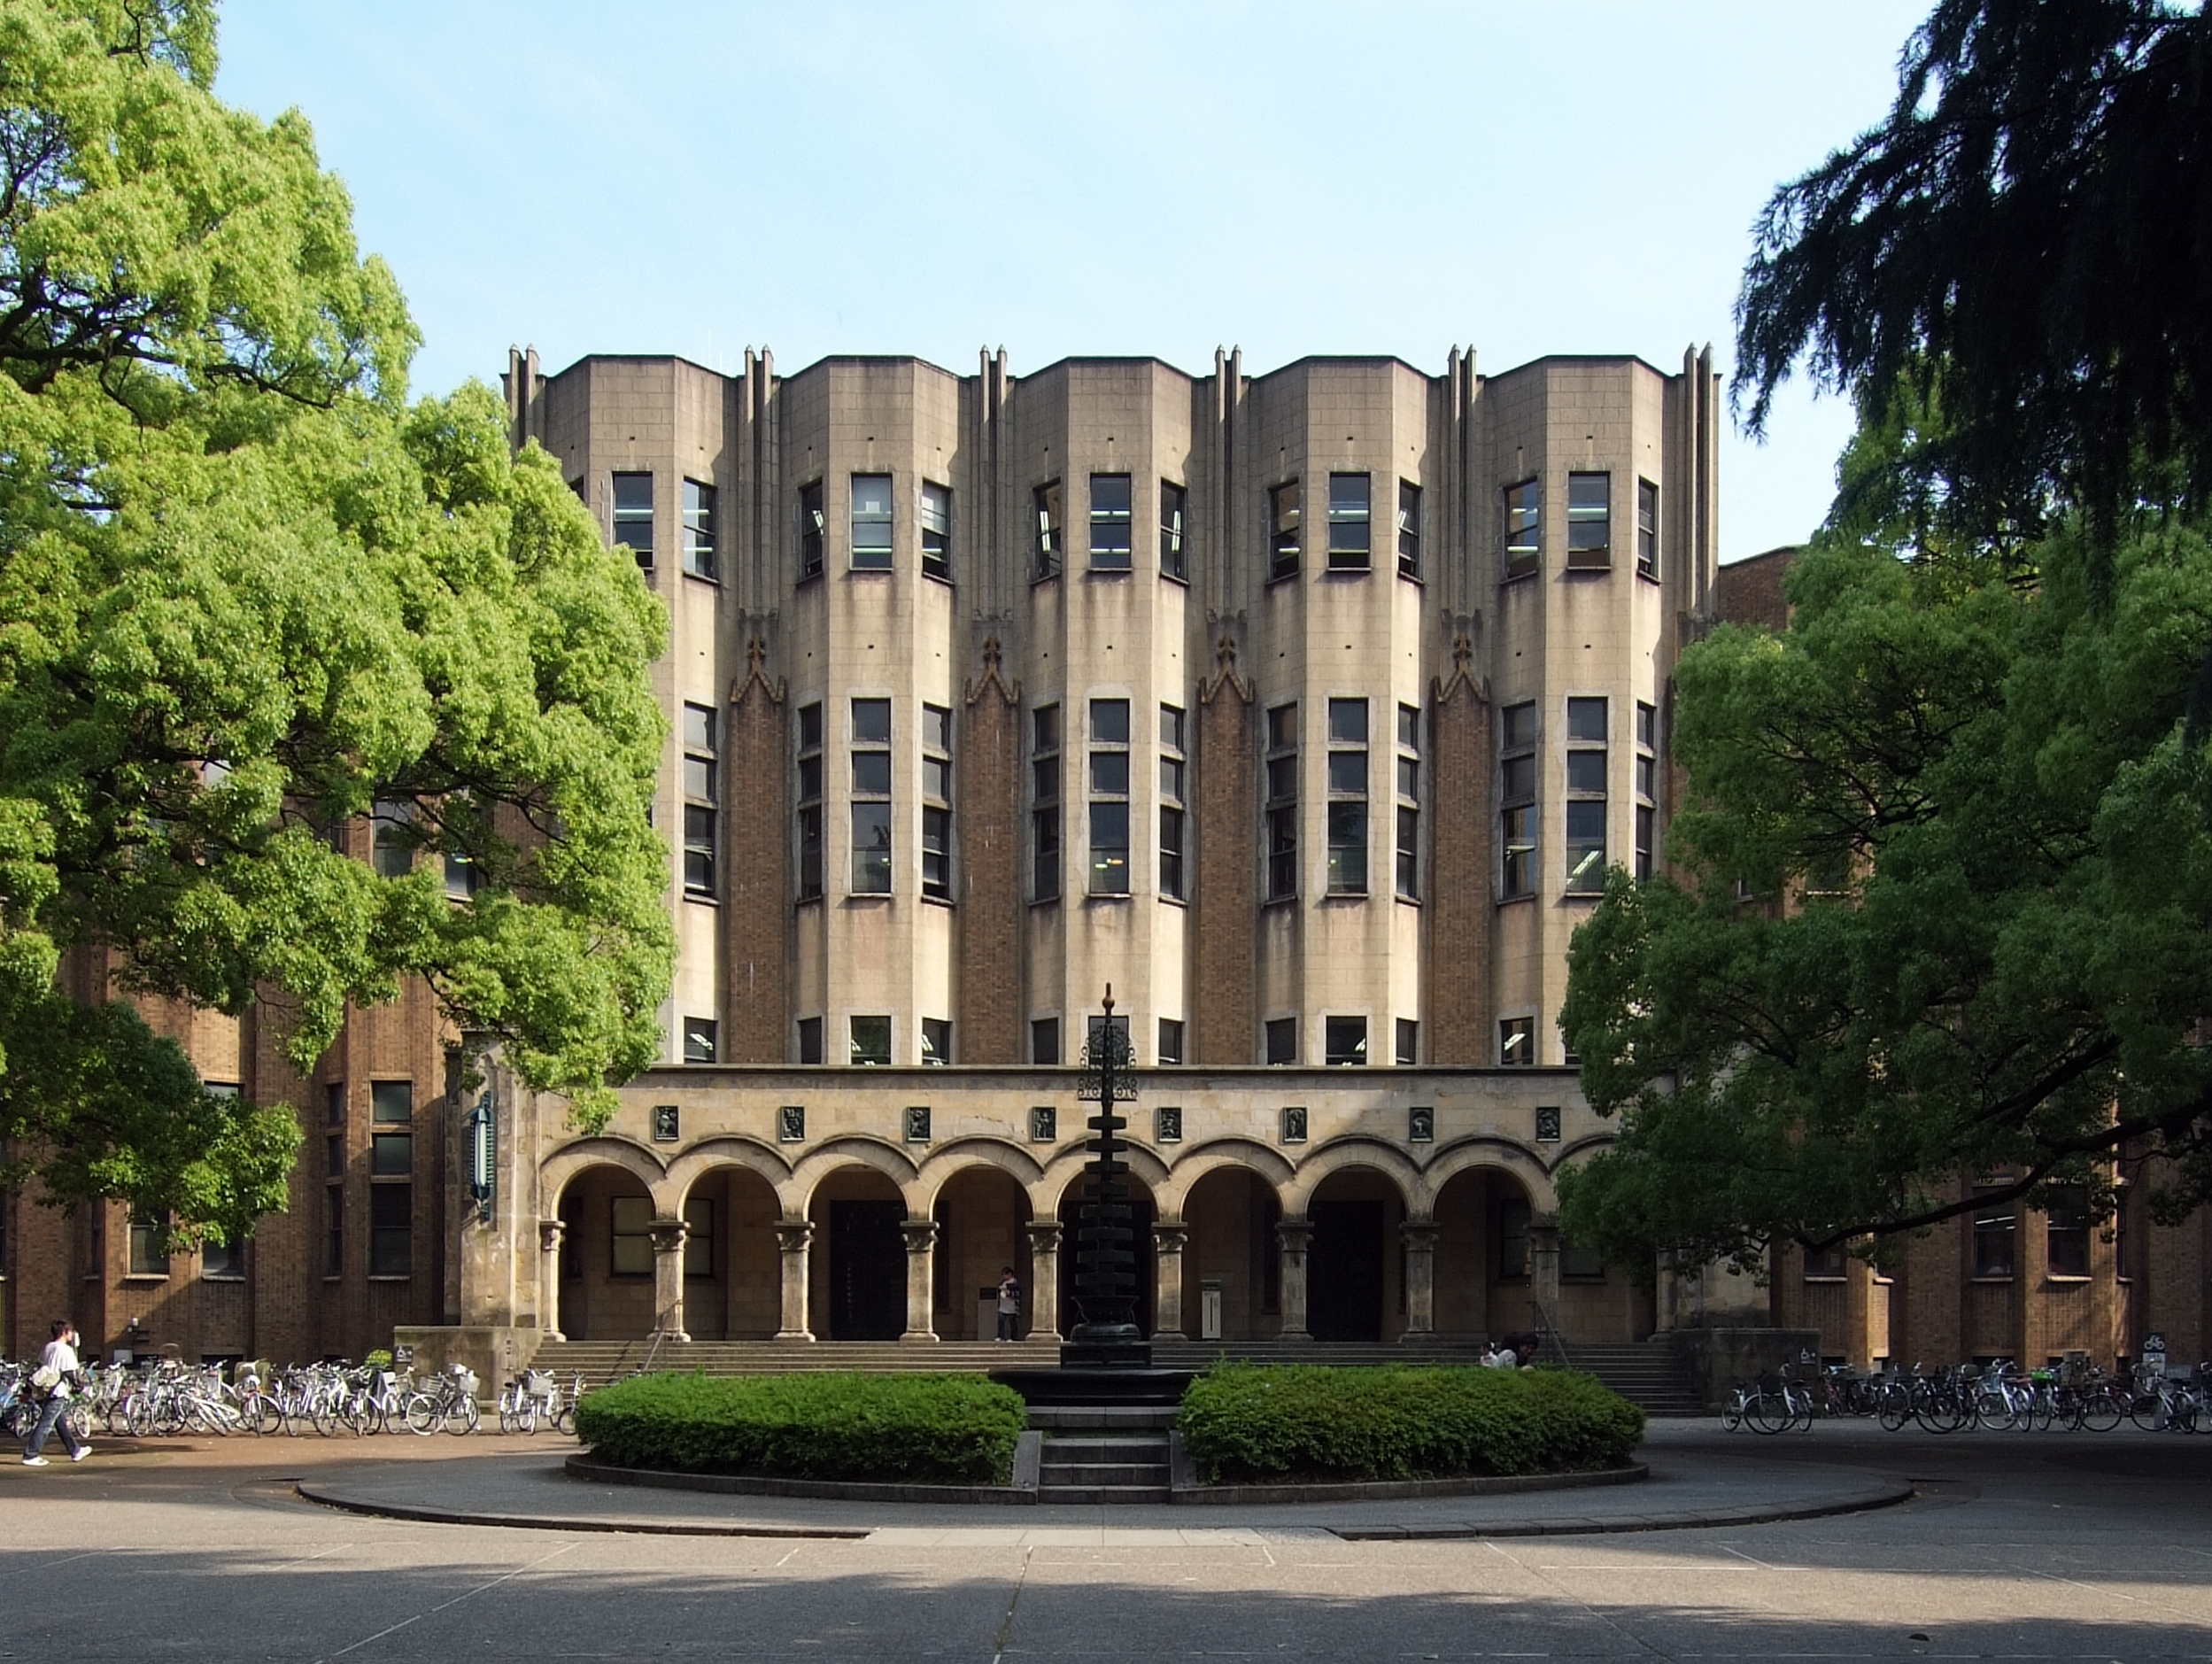 https://upload.wikimedia.org/wikipedia/commons/1/12/General_Library_Tokyo_University_2010.jpg